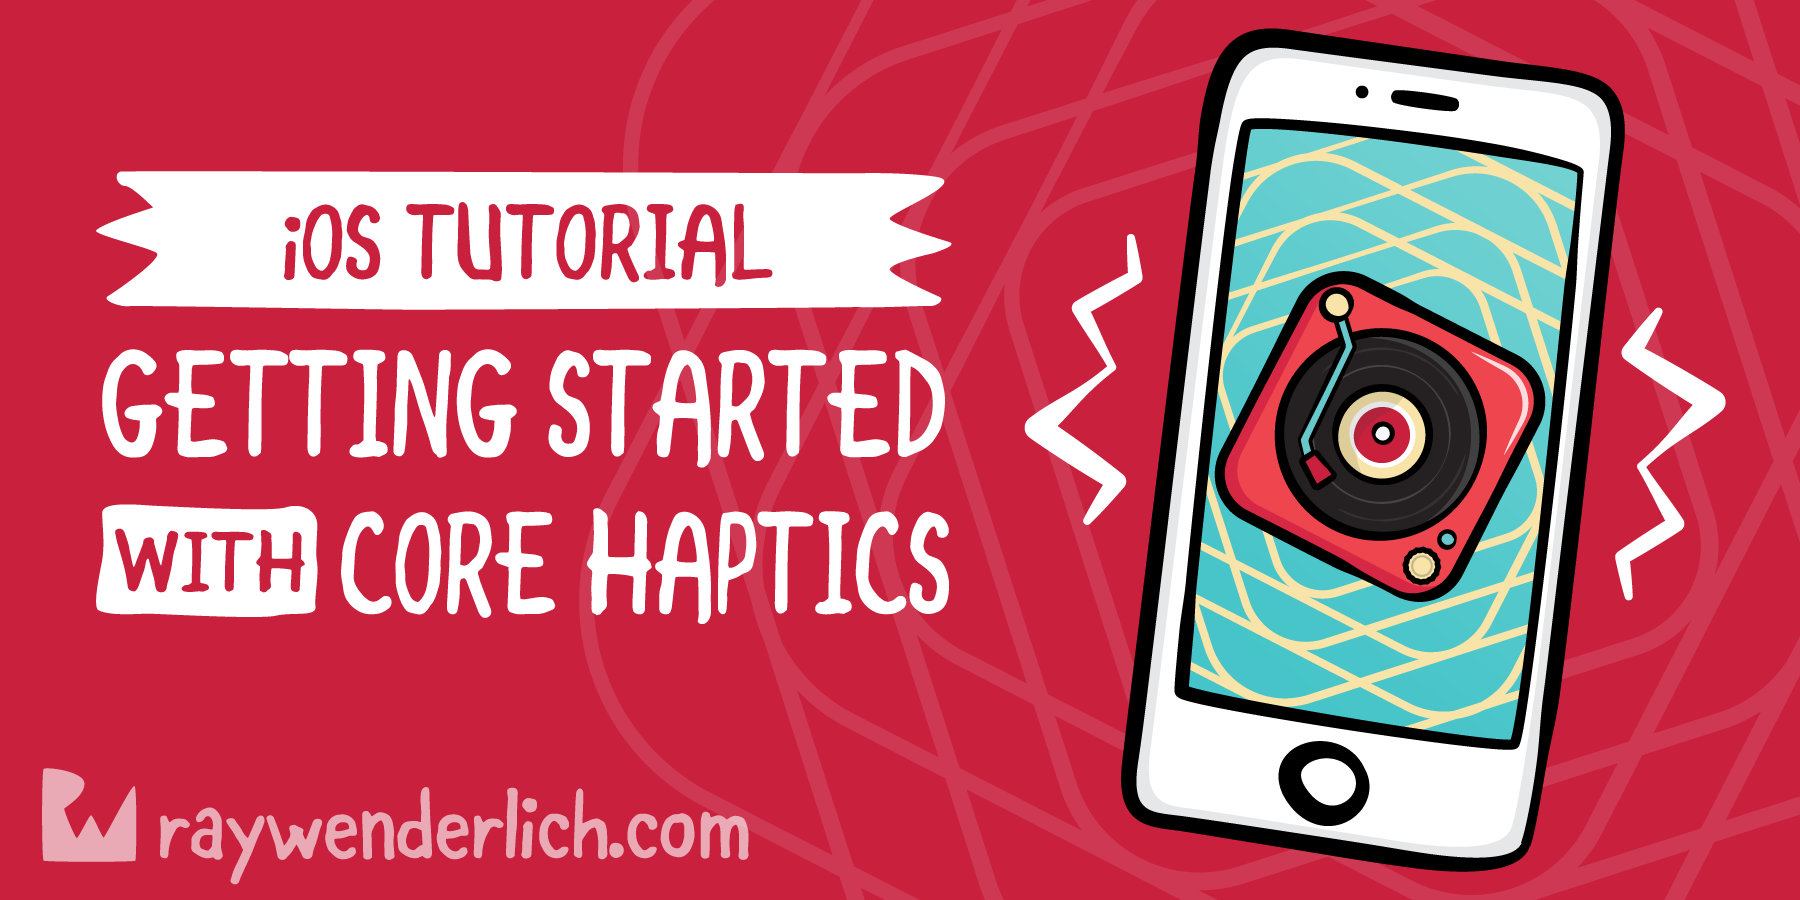 Getting Started With Core Haptics [FREE]